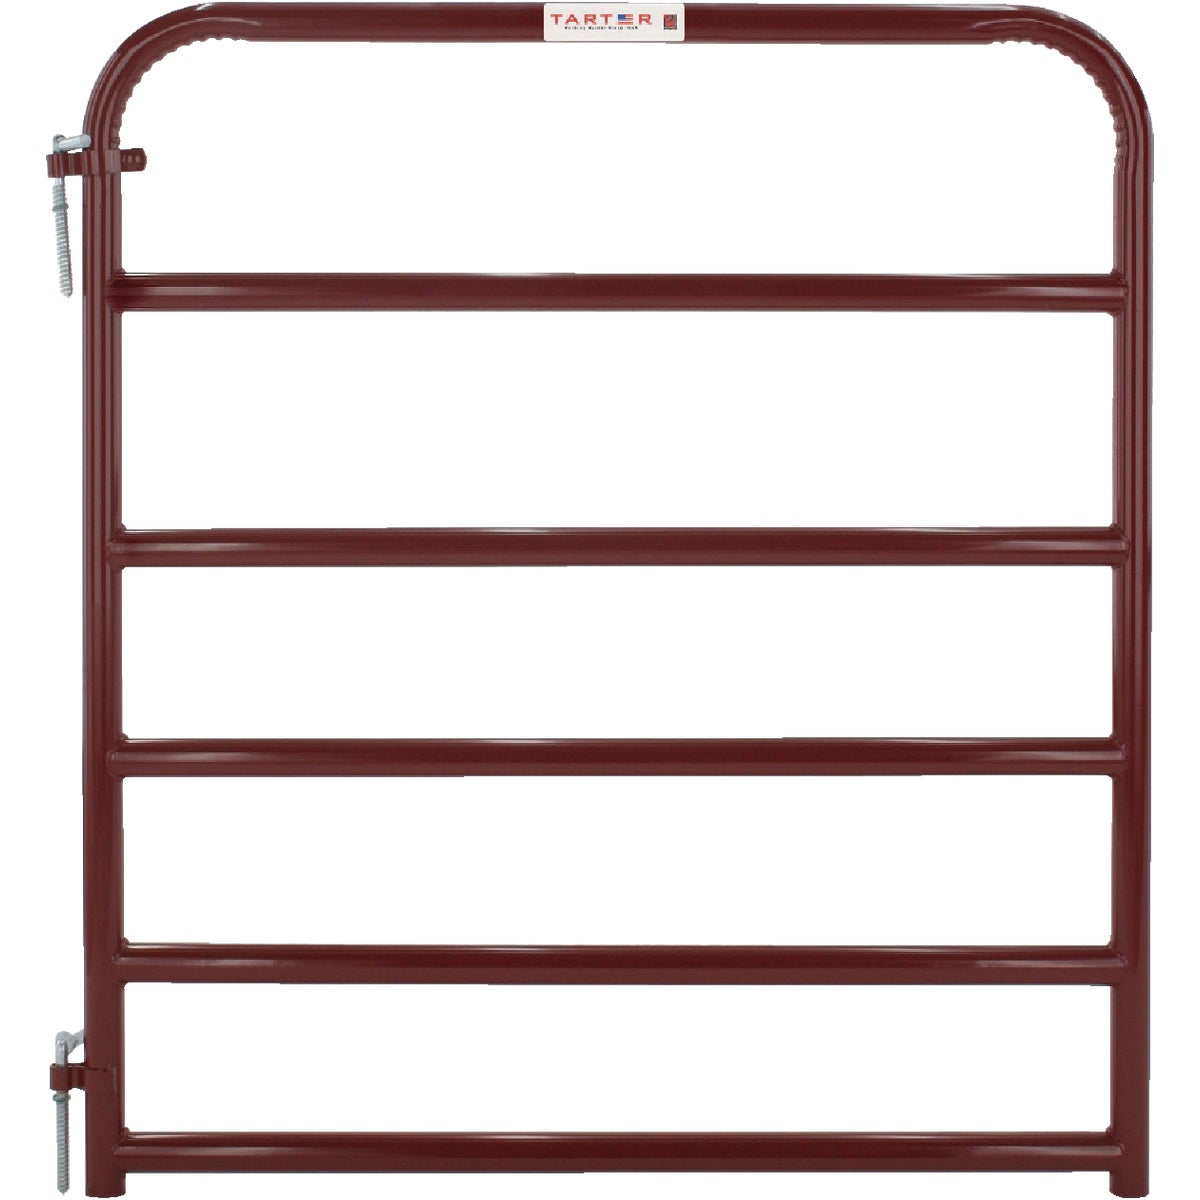 4' 6BAR RED ECONO GATE - 6ER4 by Tarter Llc